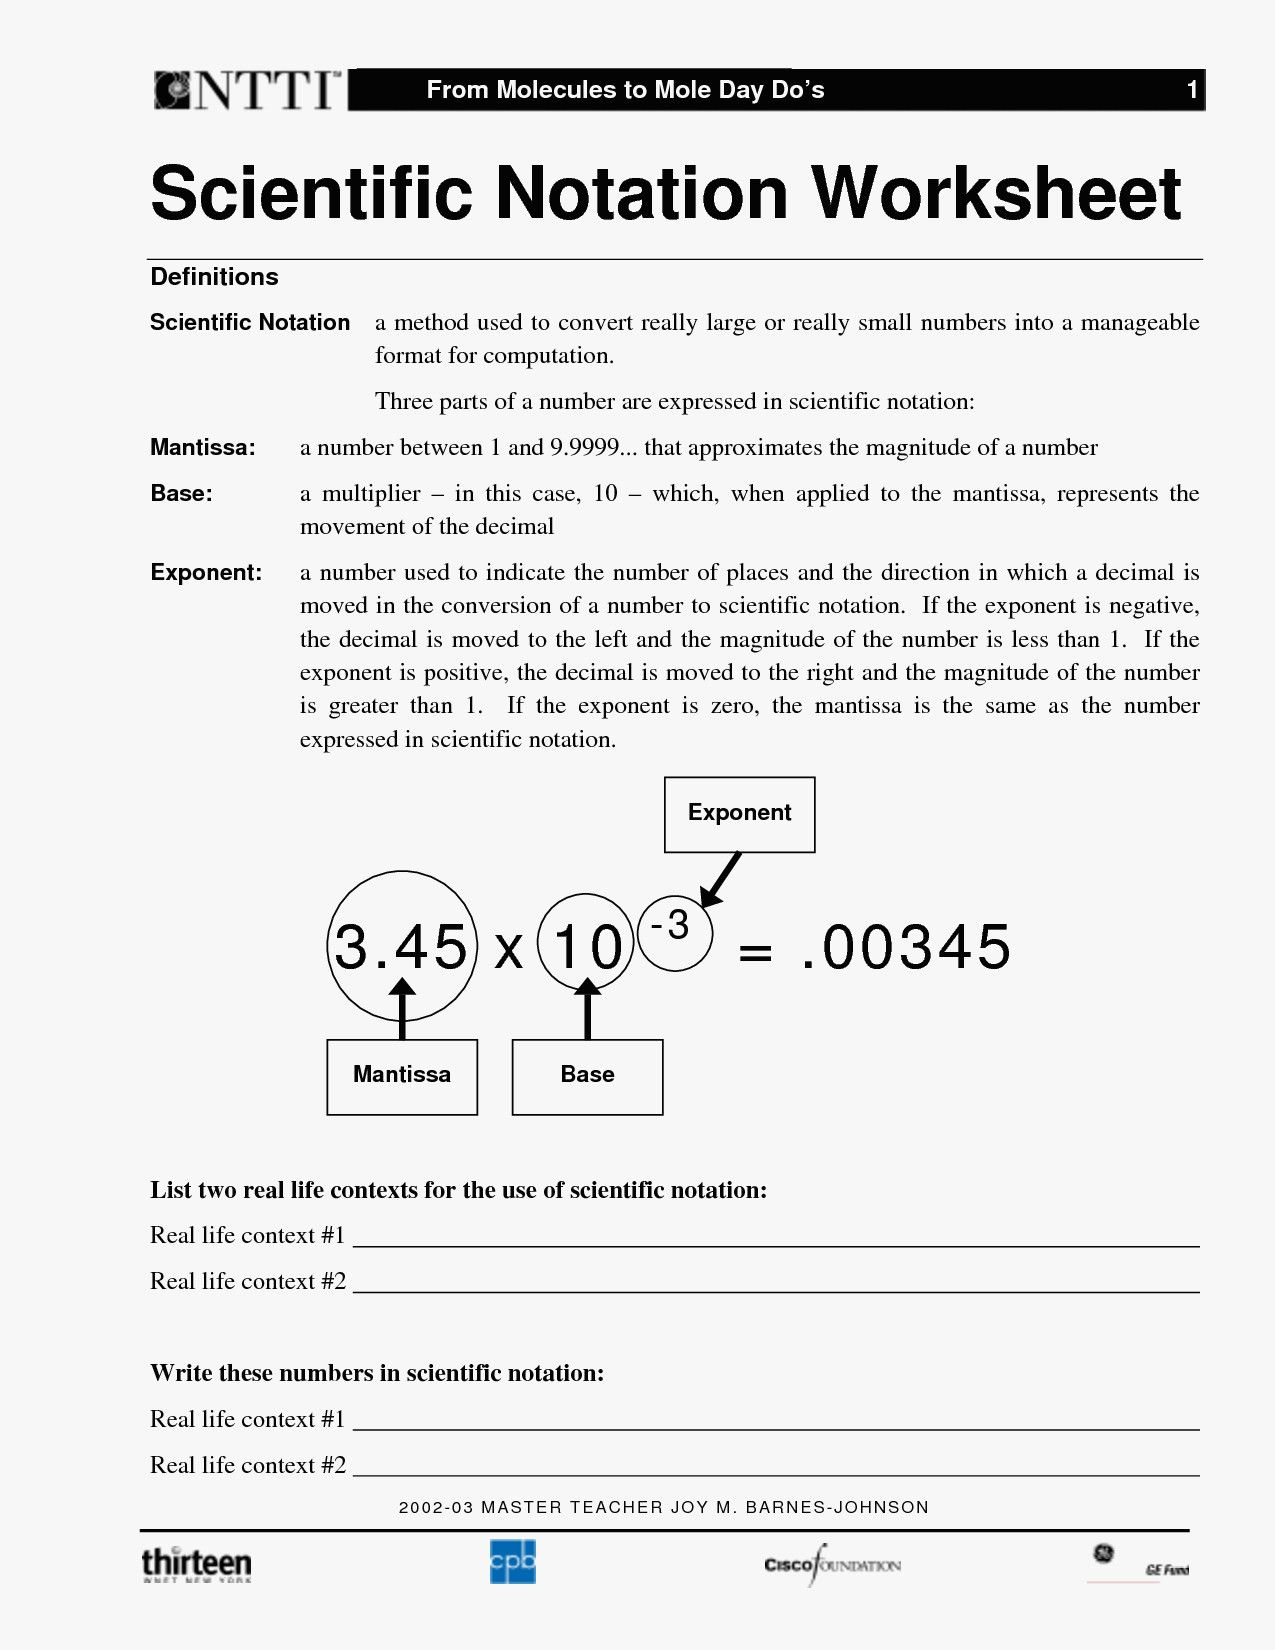 Isotope Notation Worksheet 1